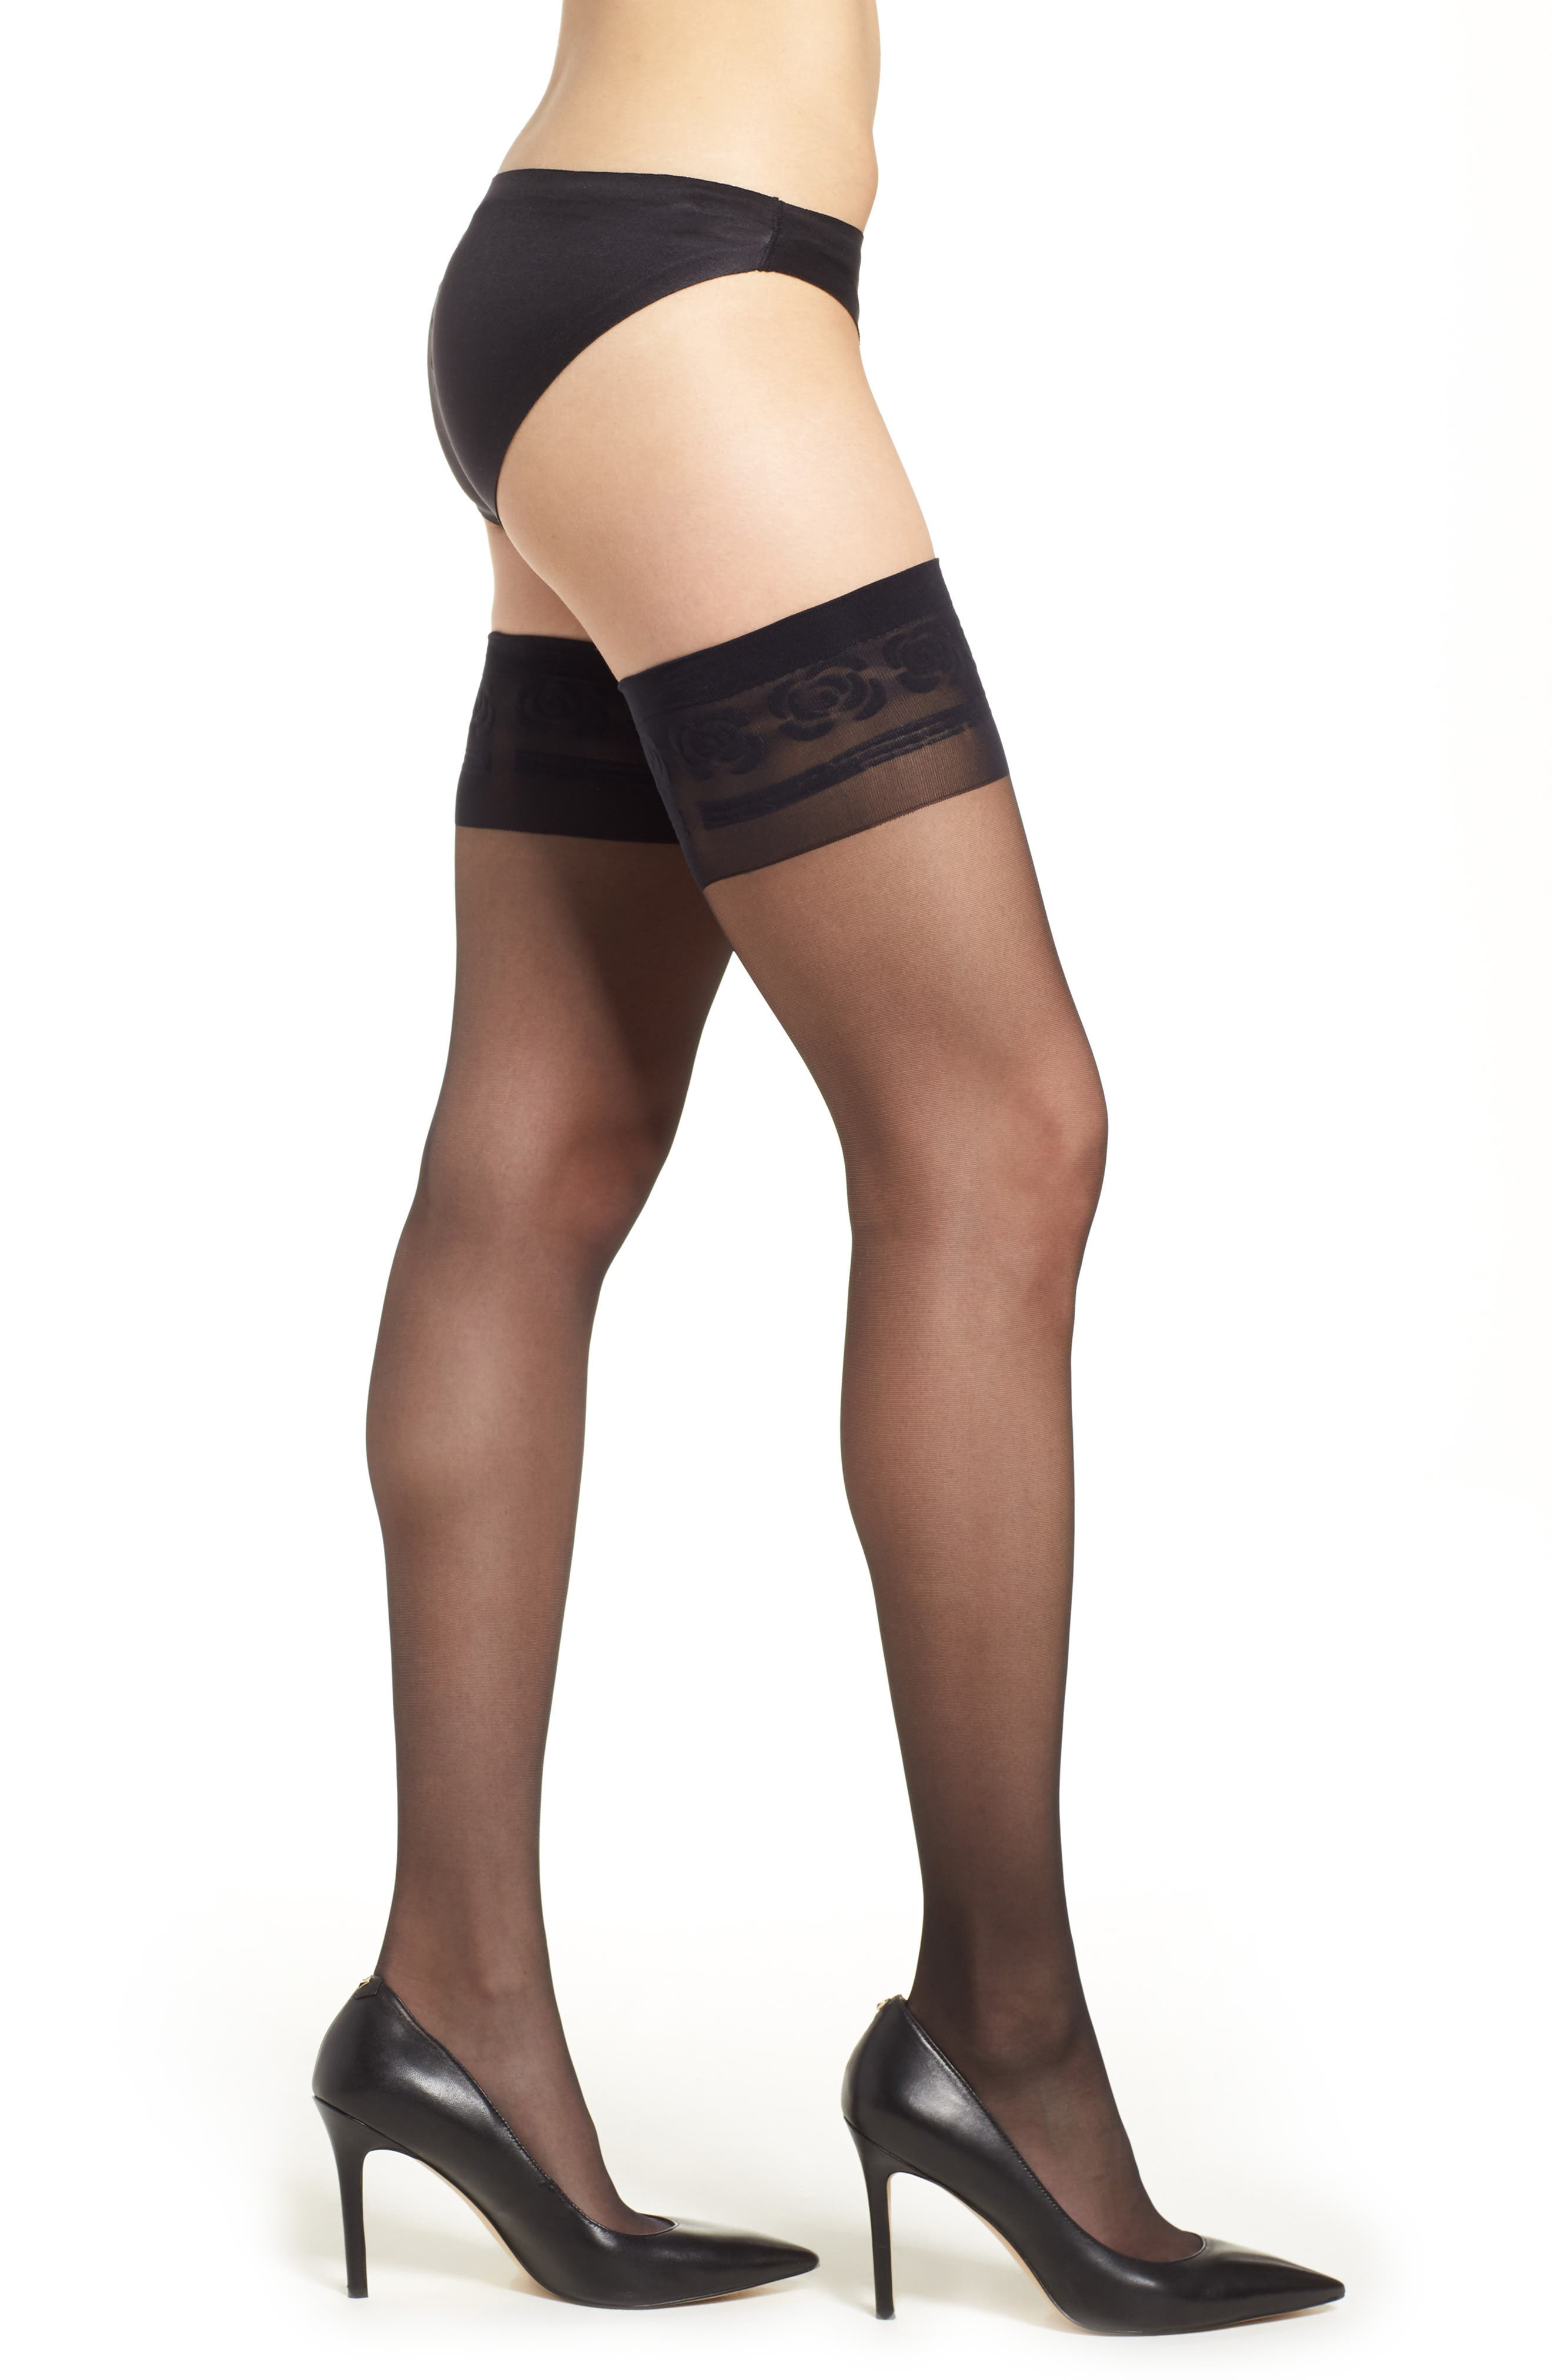 Component Sheer Stay-Up Stockings,                         Main,                         color, Black